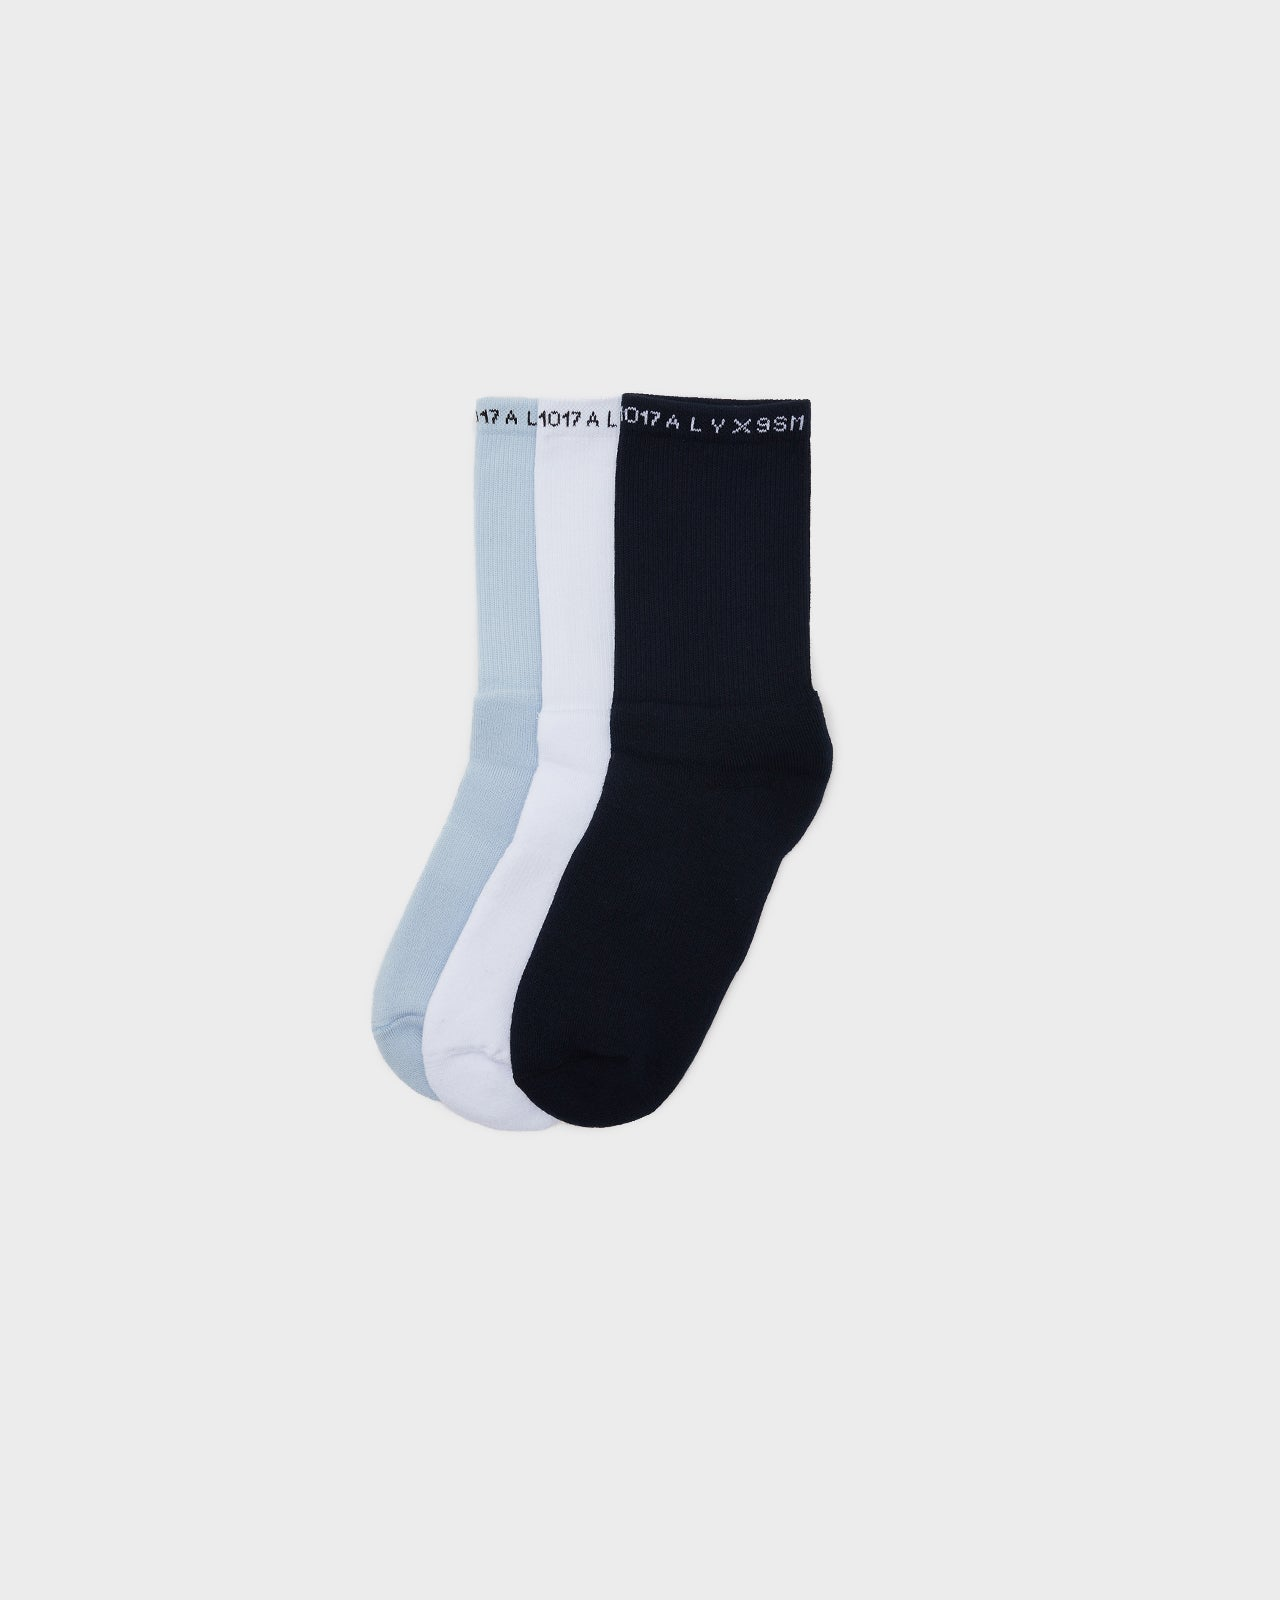 3 Pack of Socks in Light Blue, Blue, White